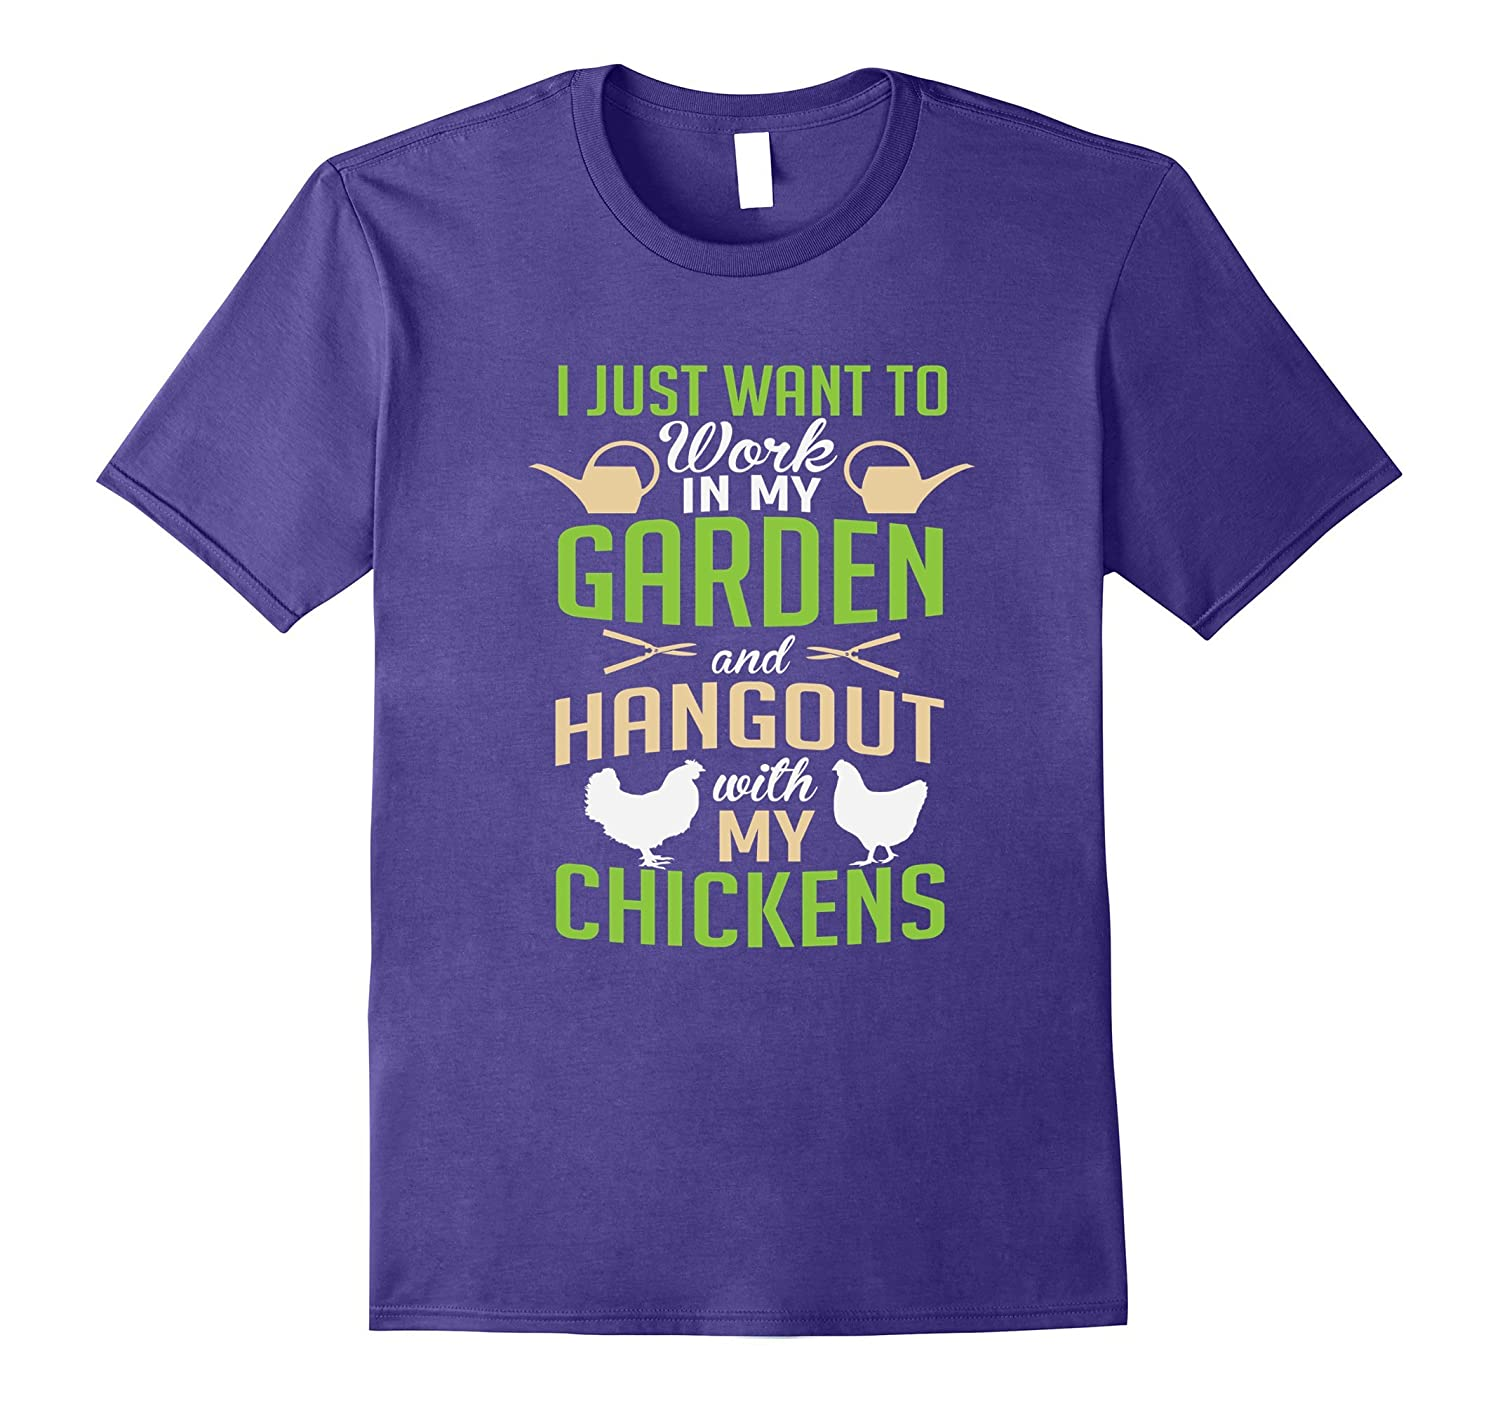 Work In My Garden Hangout With My Chickens Farming T-Shirt-TH